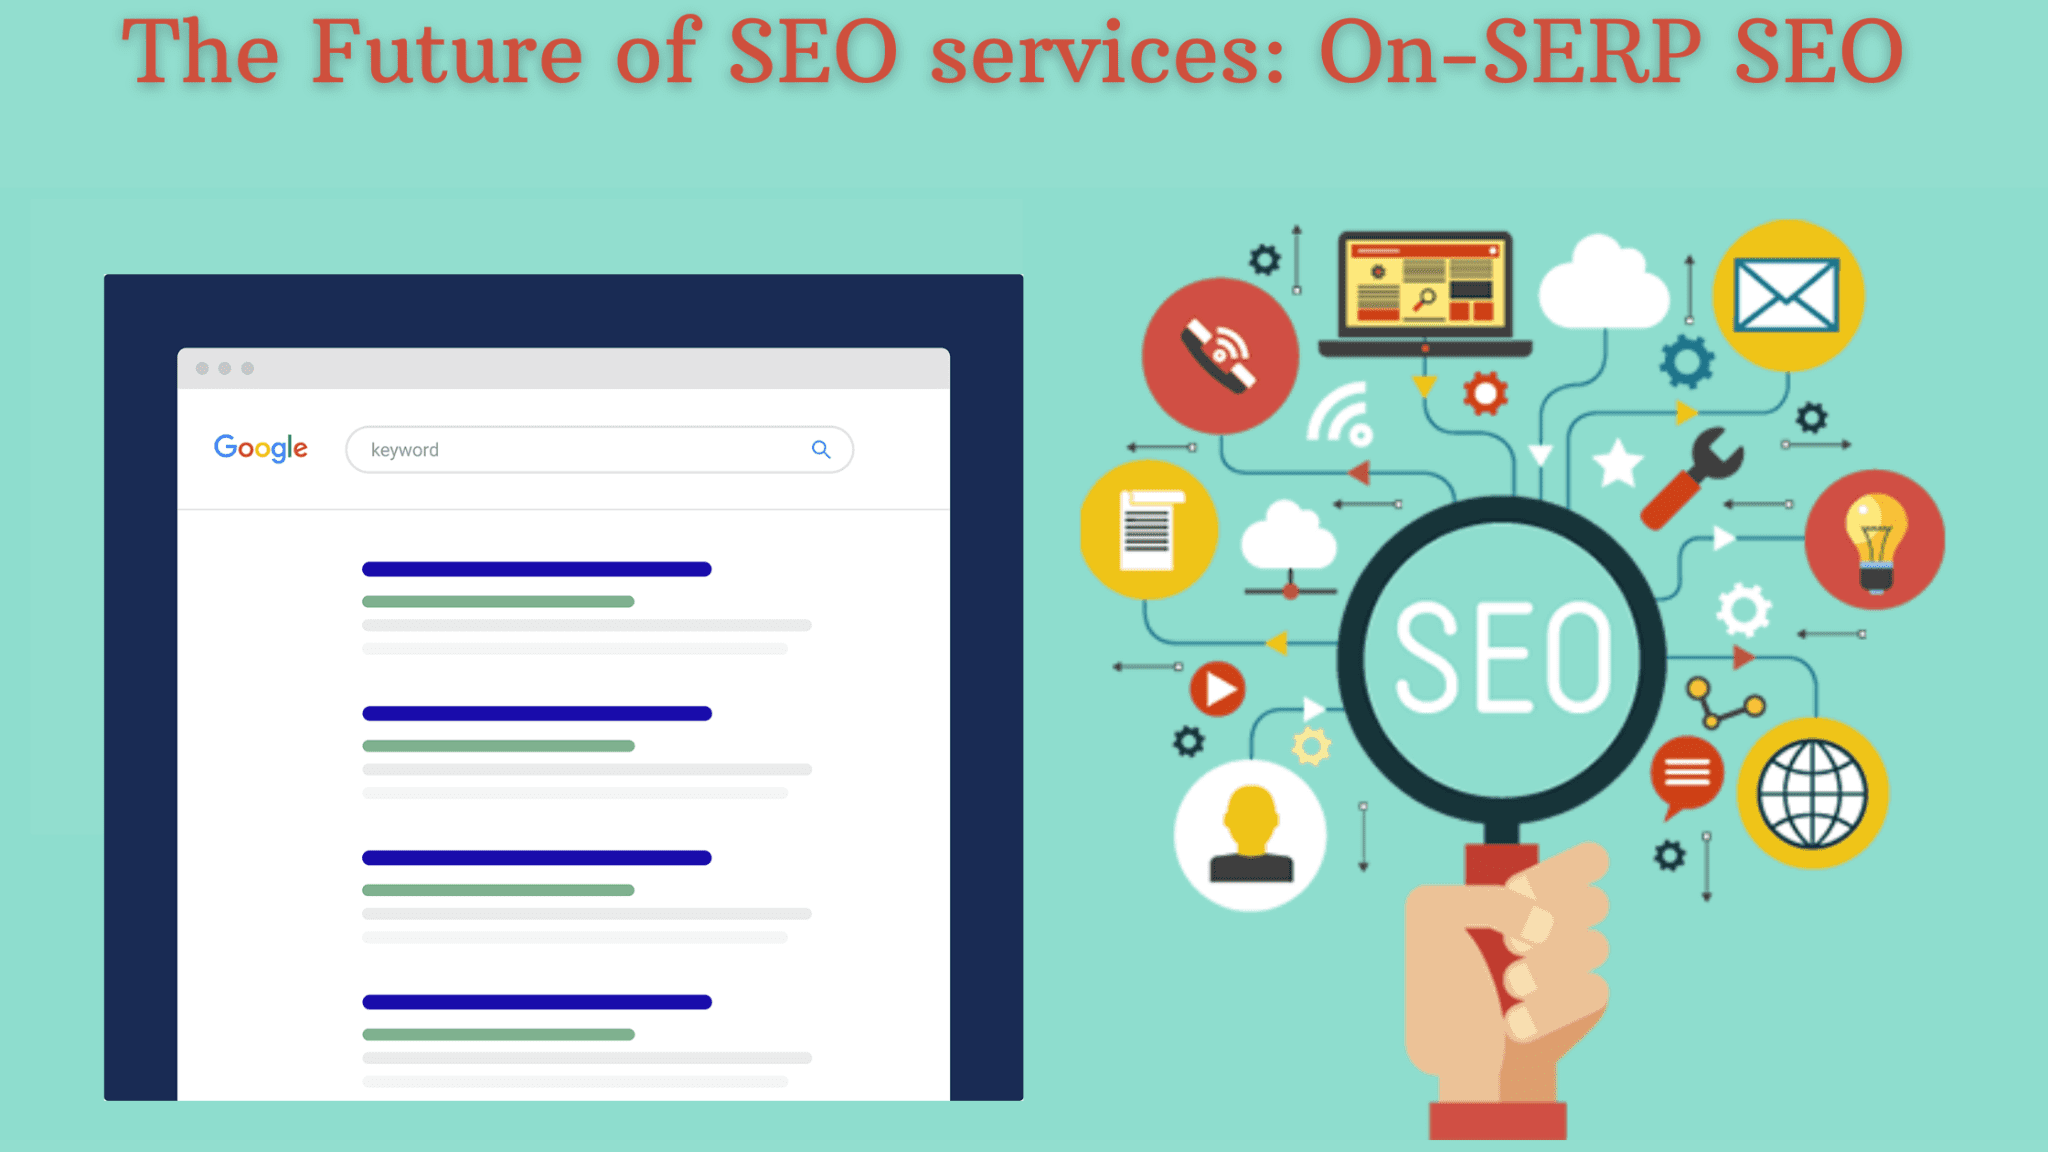 The Future of SEO services - On-SERP SEO